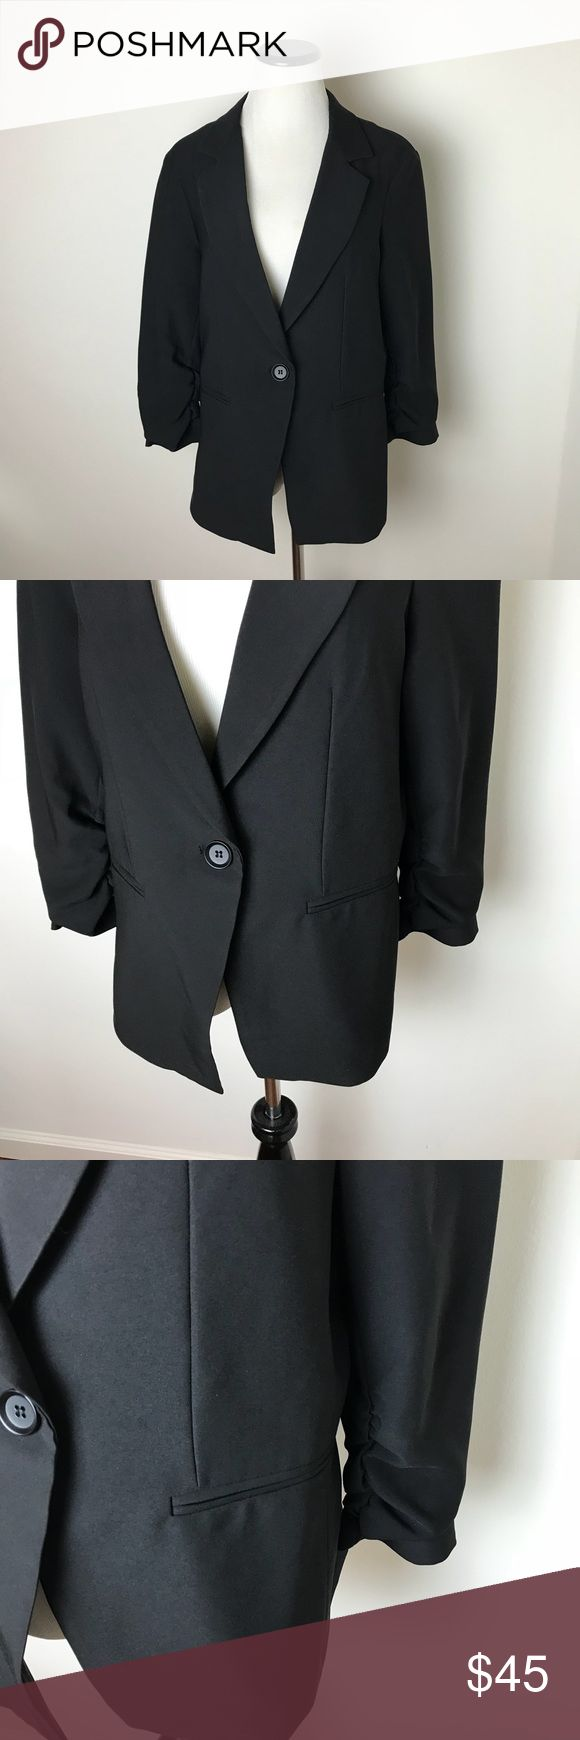 ✨SALE✨ Gibson Black Blazer 3/4 Sleeves Nordstrom ✨Store closing Permanently 1/28/18✨ Get it before it's gone forever!  Bundle and make offers!    Gibson Black Blazer with 3/4 Sleeves  Measurements laying flat: Underarm to underarm- 20 inches  Total length- 26 inches  Sleeve length- 19 inches  Bin 4 Gibson Jackets & Coats Blazers